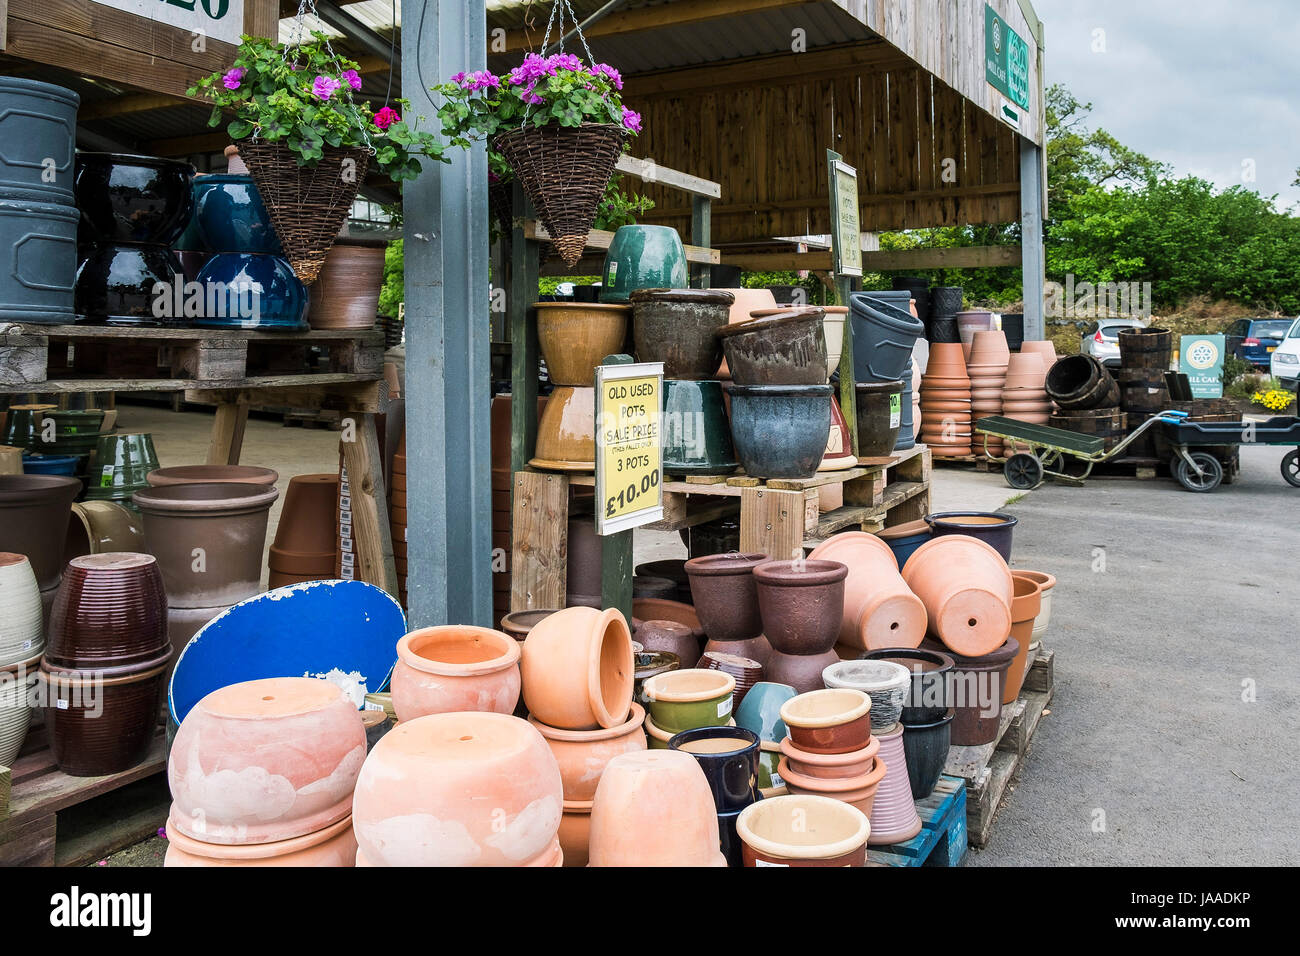 A variety of ceramic pots for sale in a Garden Centre. - Stock Image